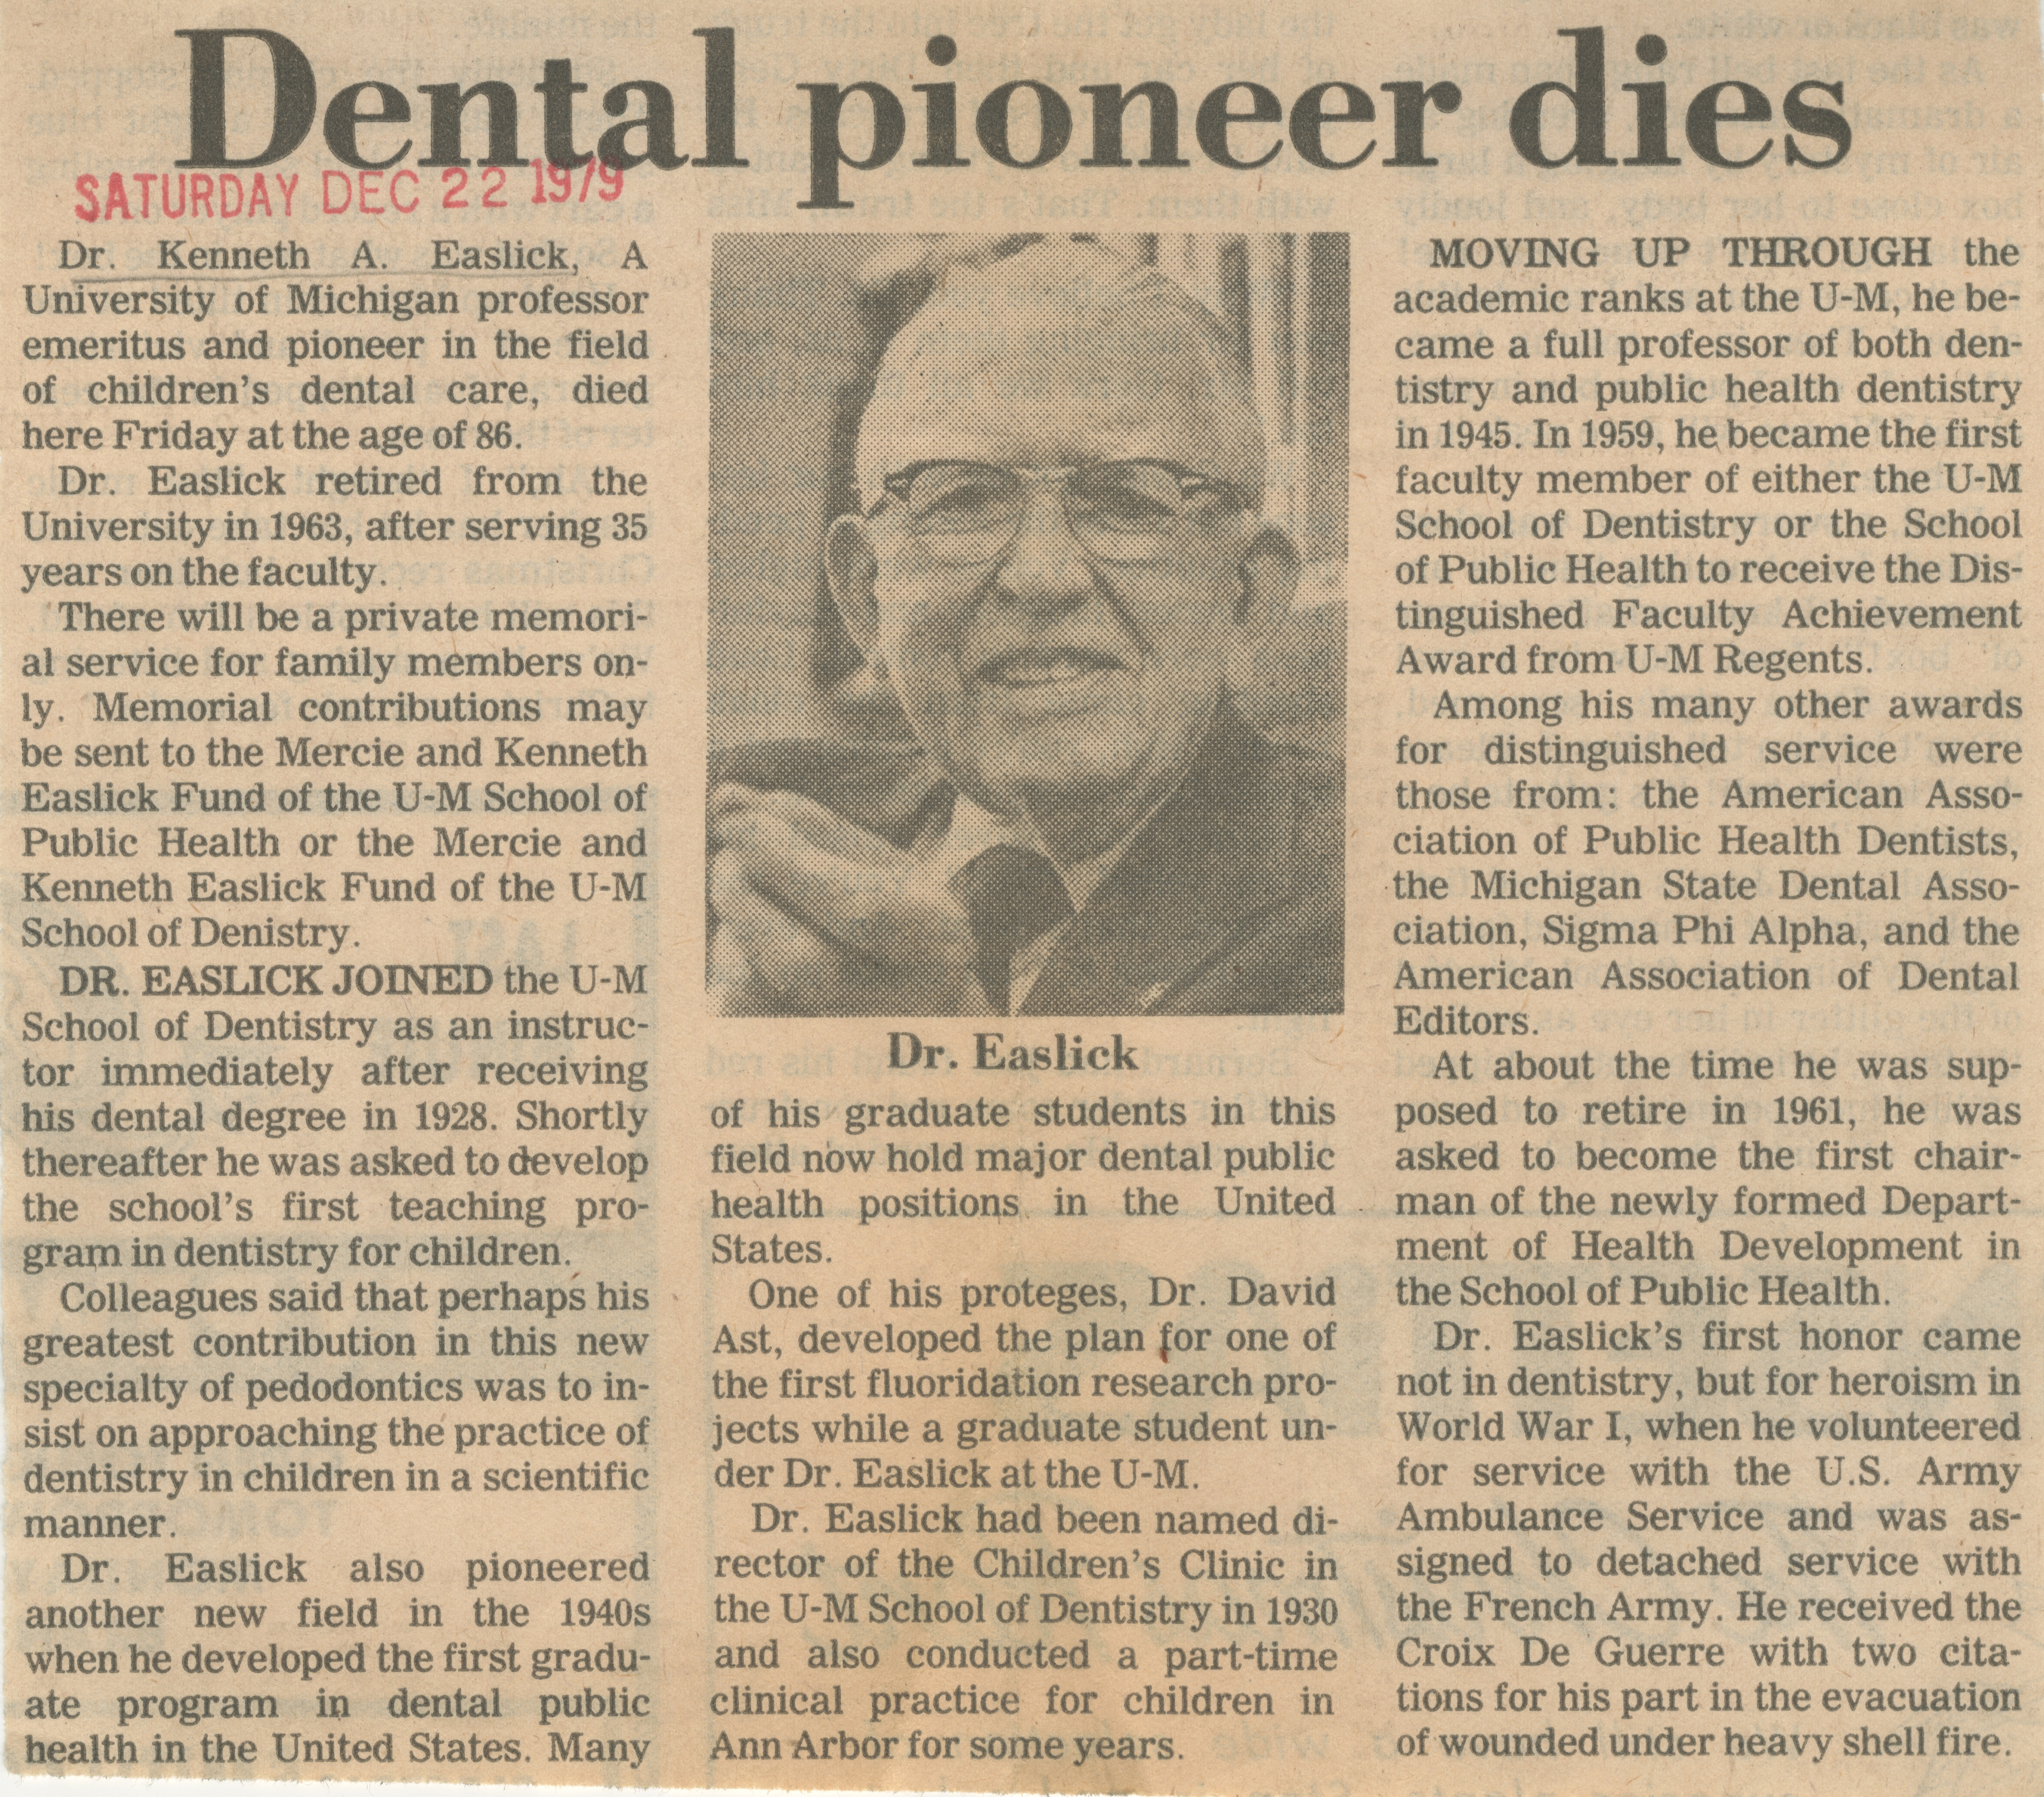 Dental pioneer dies image